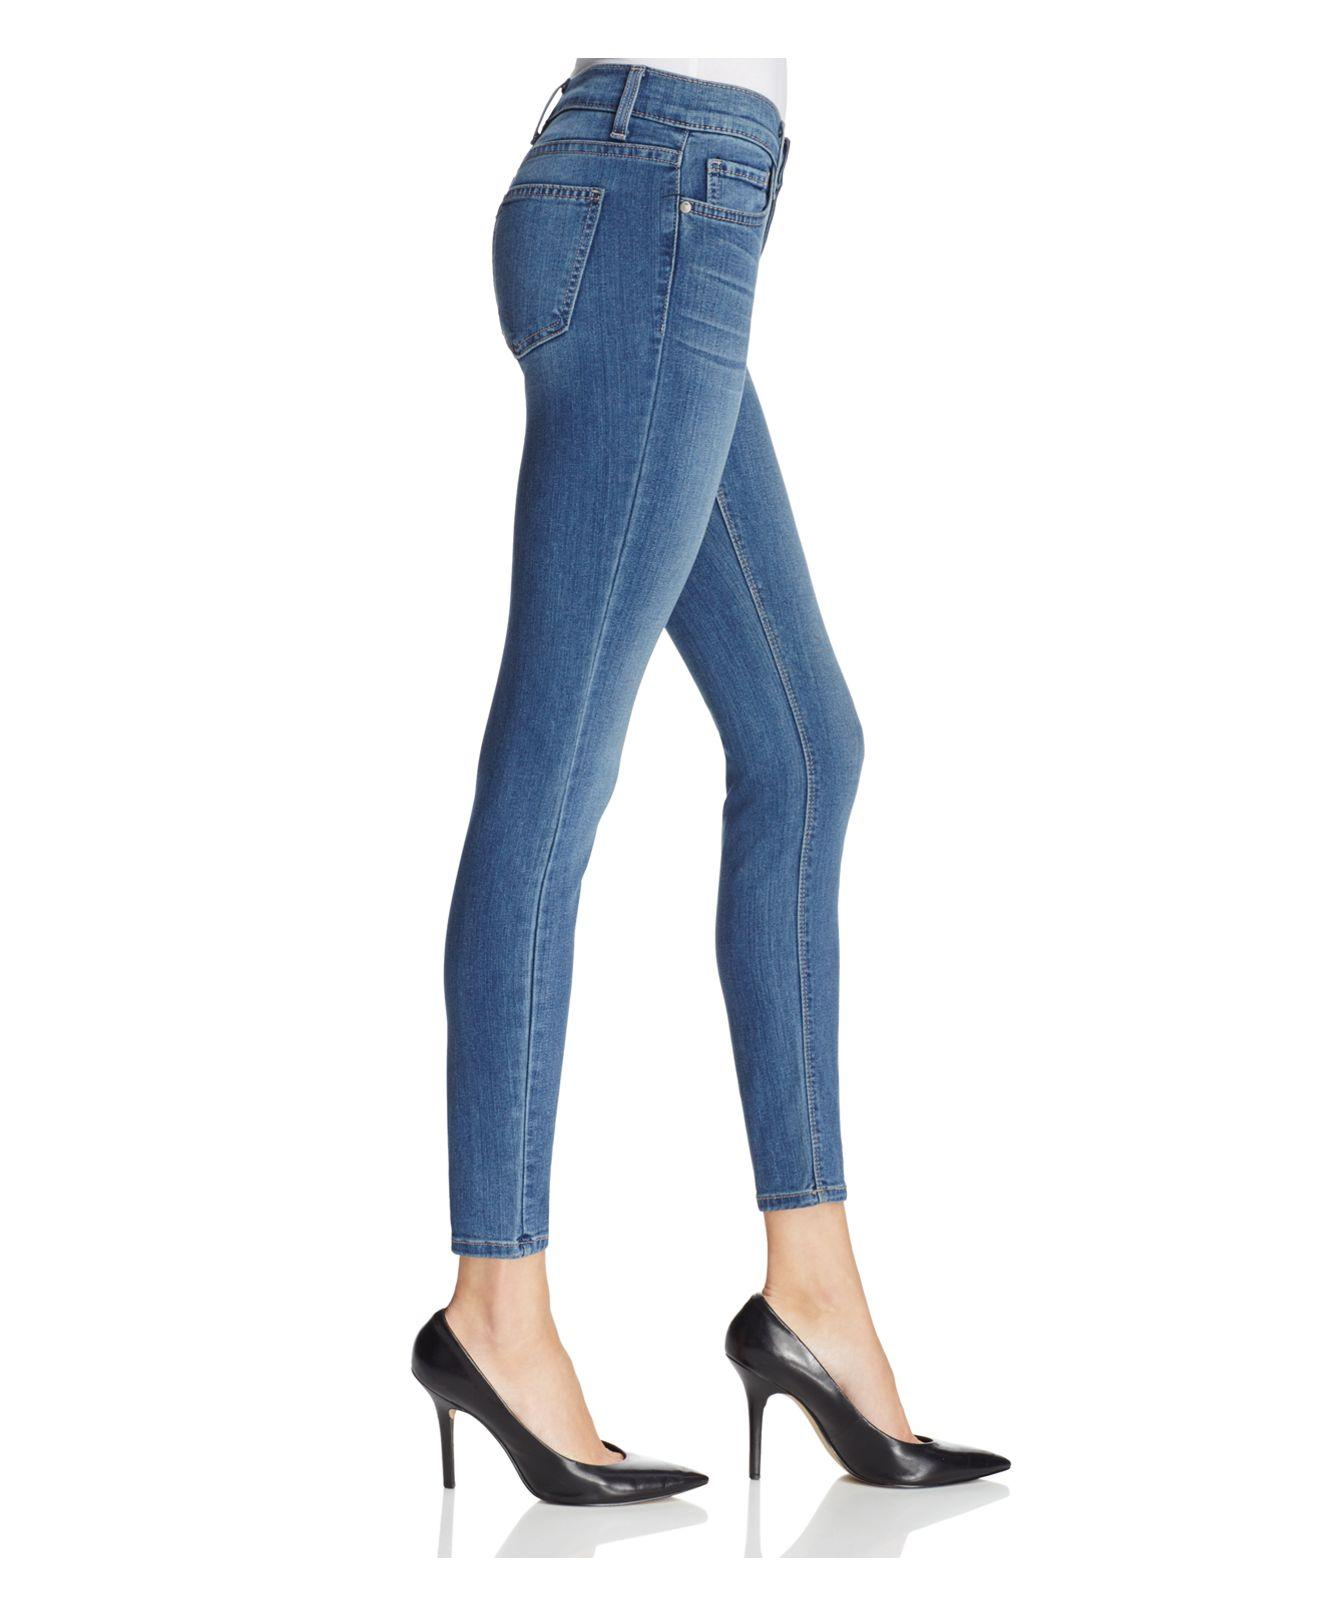 Pistola Denim Audrey Mid Rise Skinny Jeans In Pacific Blue